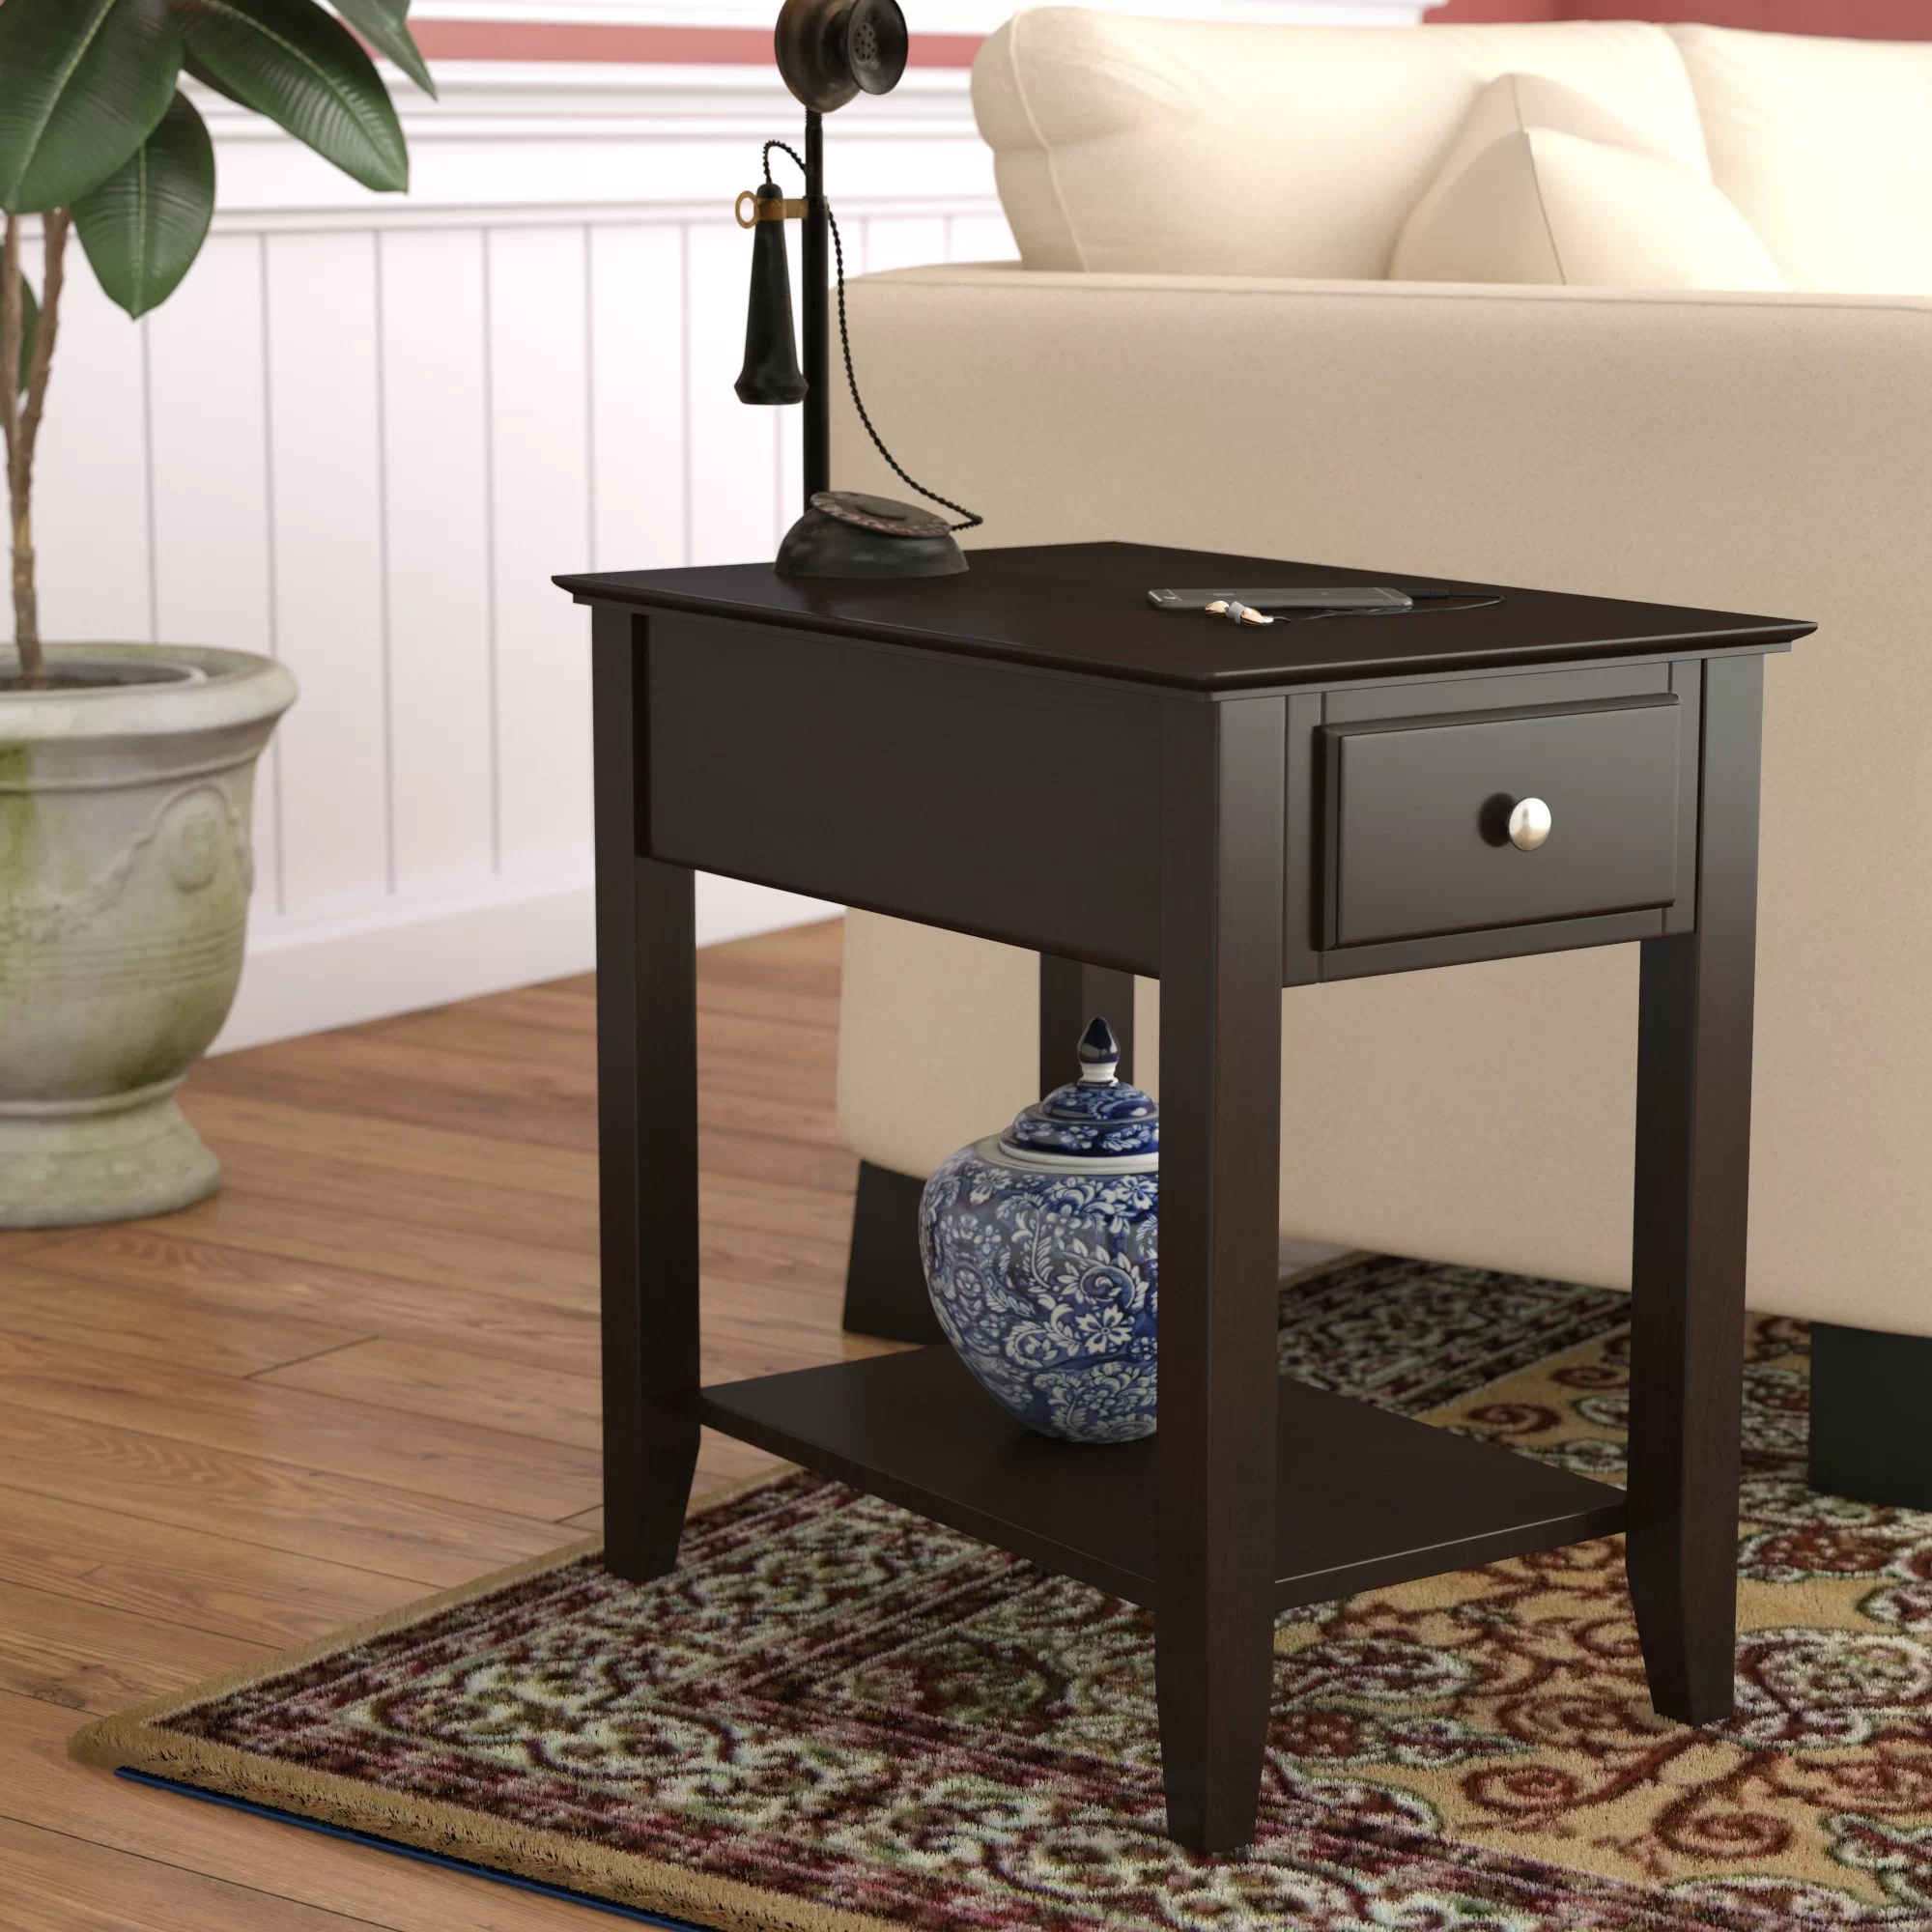 End Table For Living Room Hadley End Table With Storage